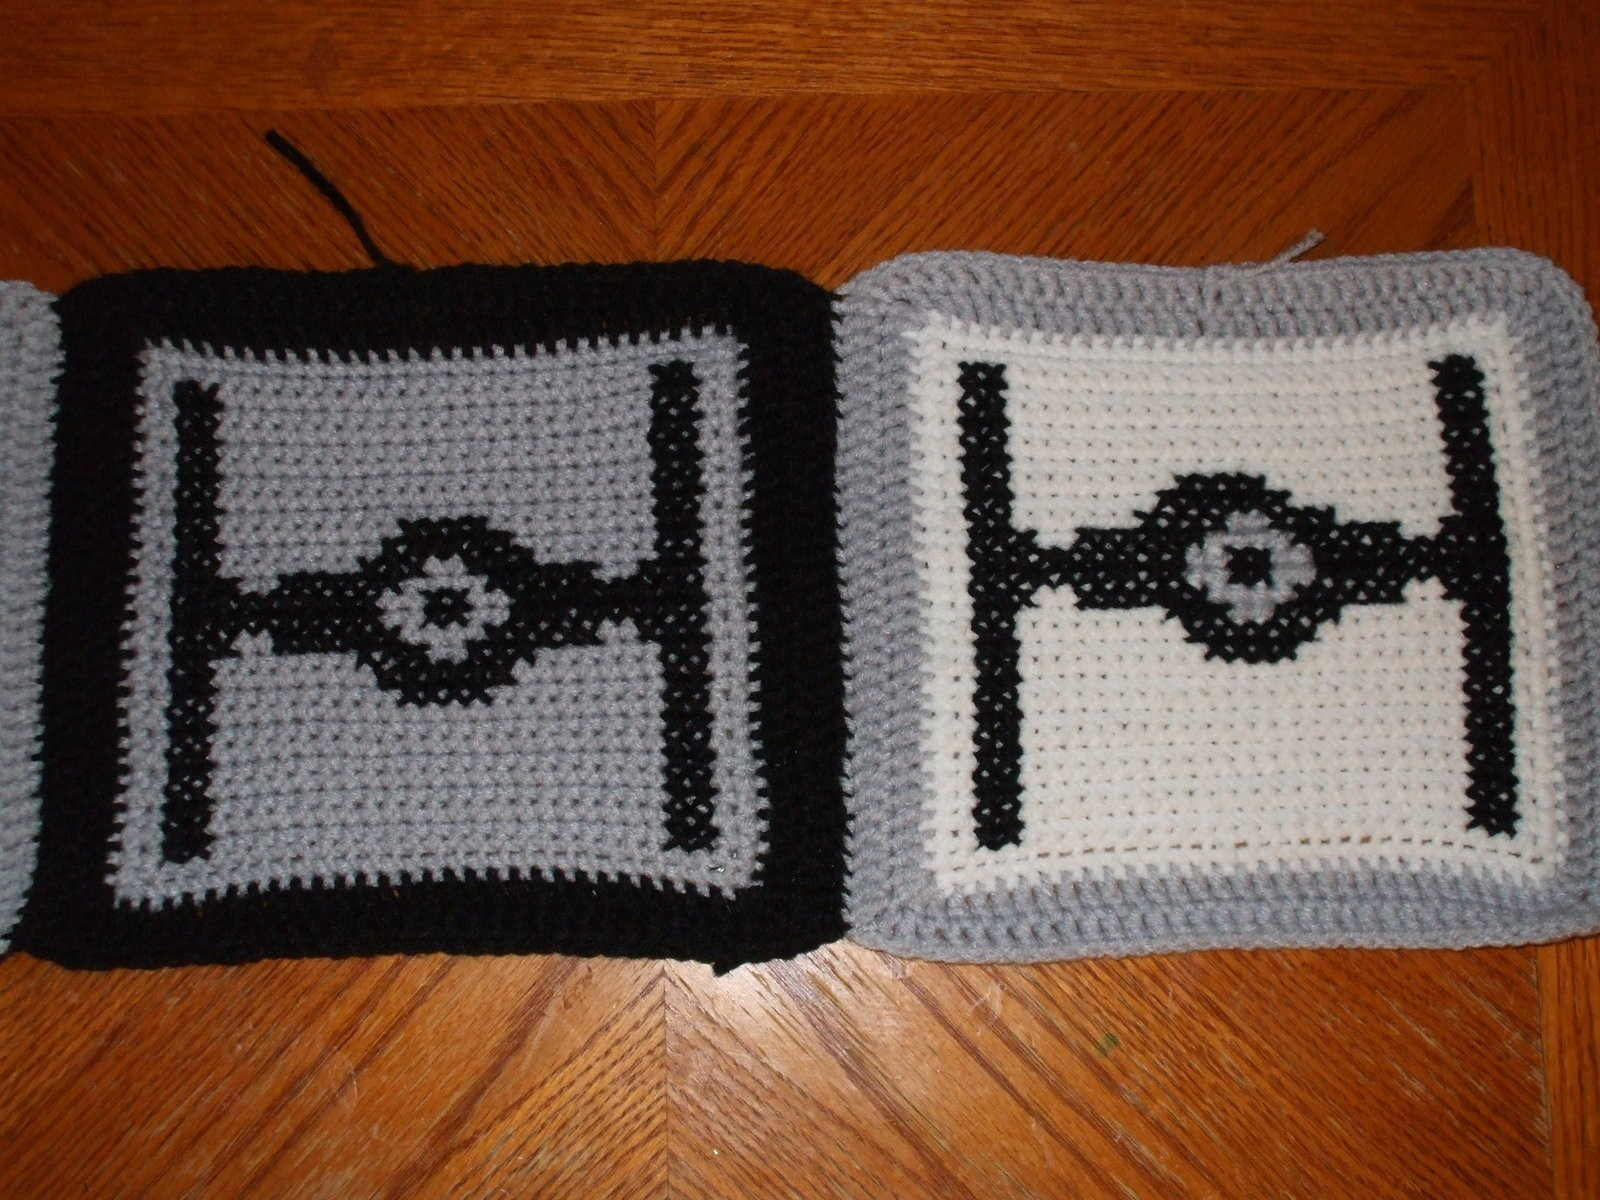 Perky Star Wars Next A Gift Star Wars Blanket A Knit Or Crochet Blanket Cross Stitch And My Bror Stitch A Knit Orcrochet Blanket By Cross Stitching baby Star Wars Blanket